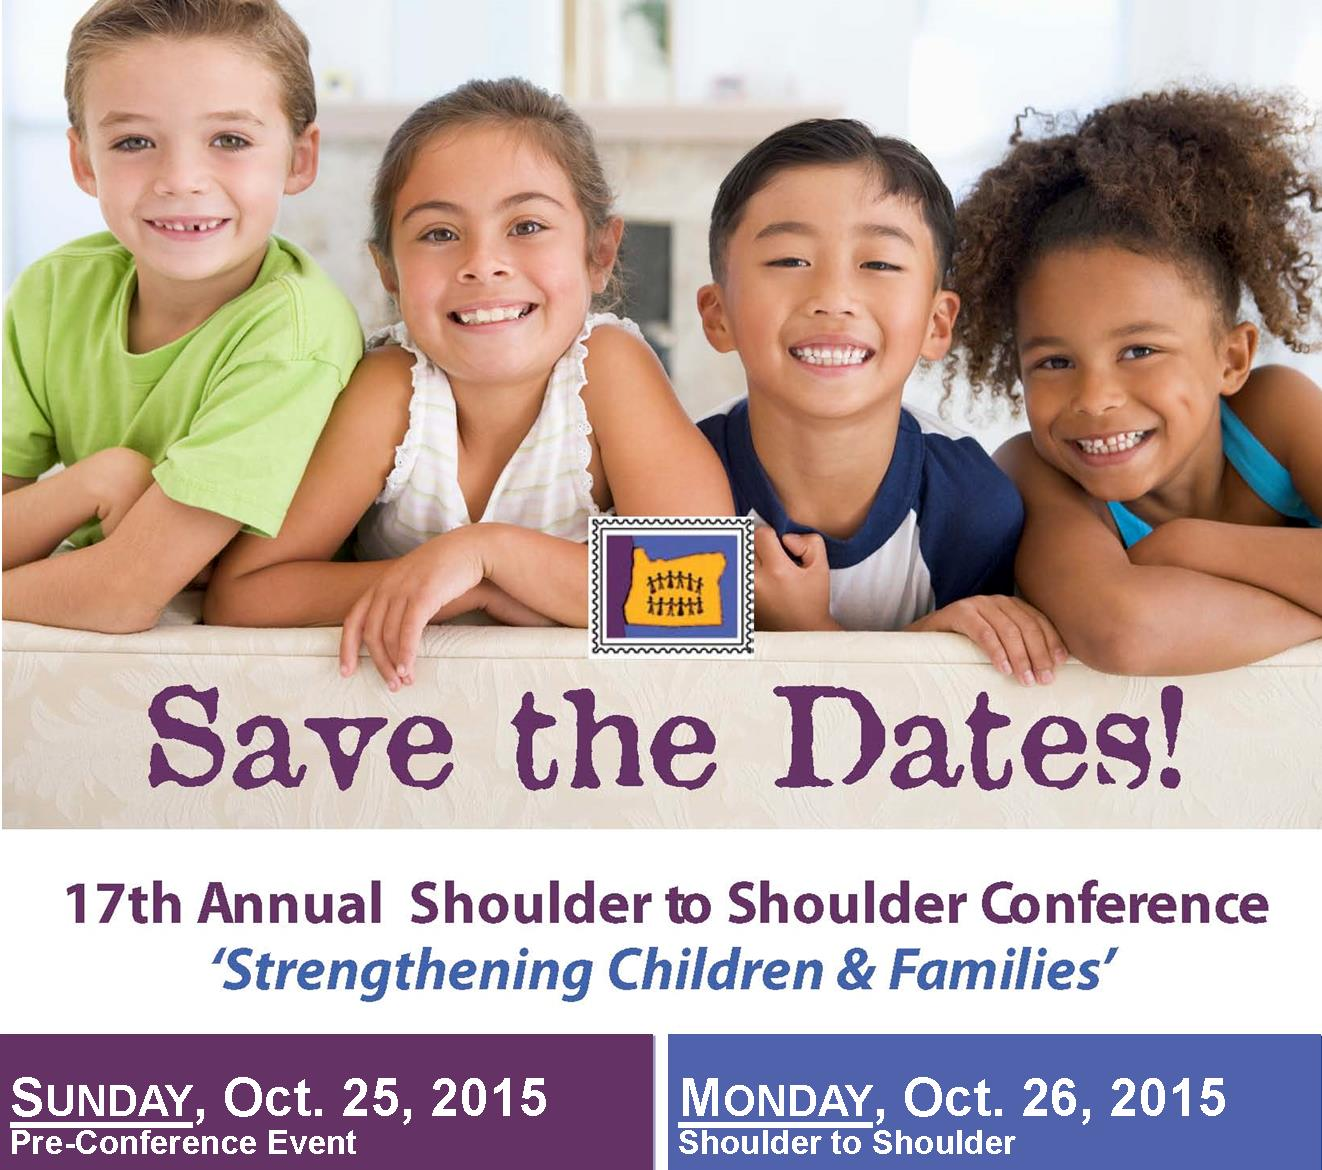 Shoulder to Shoulder Save the Date Graphic